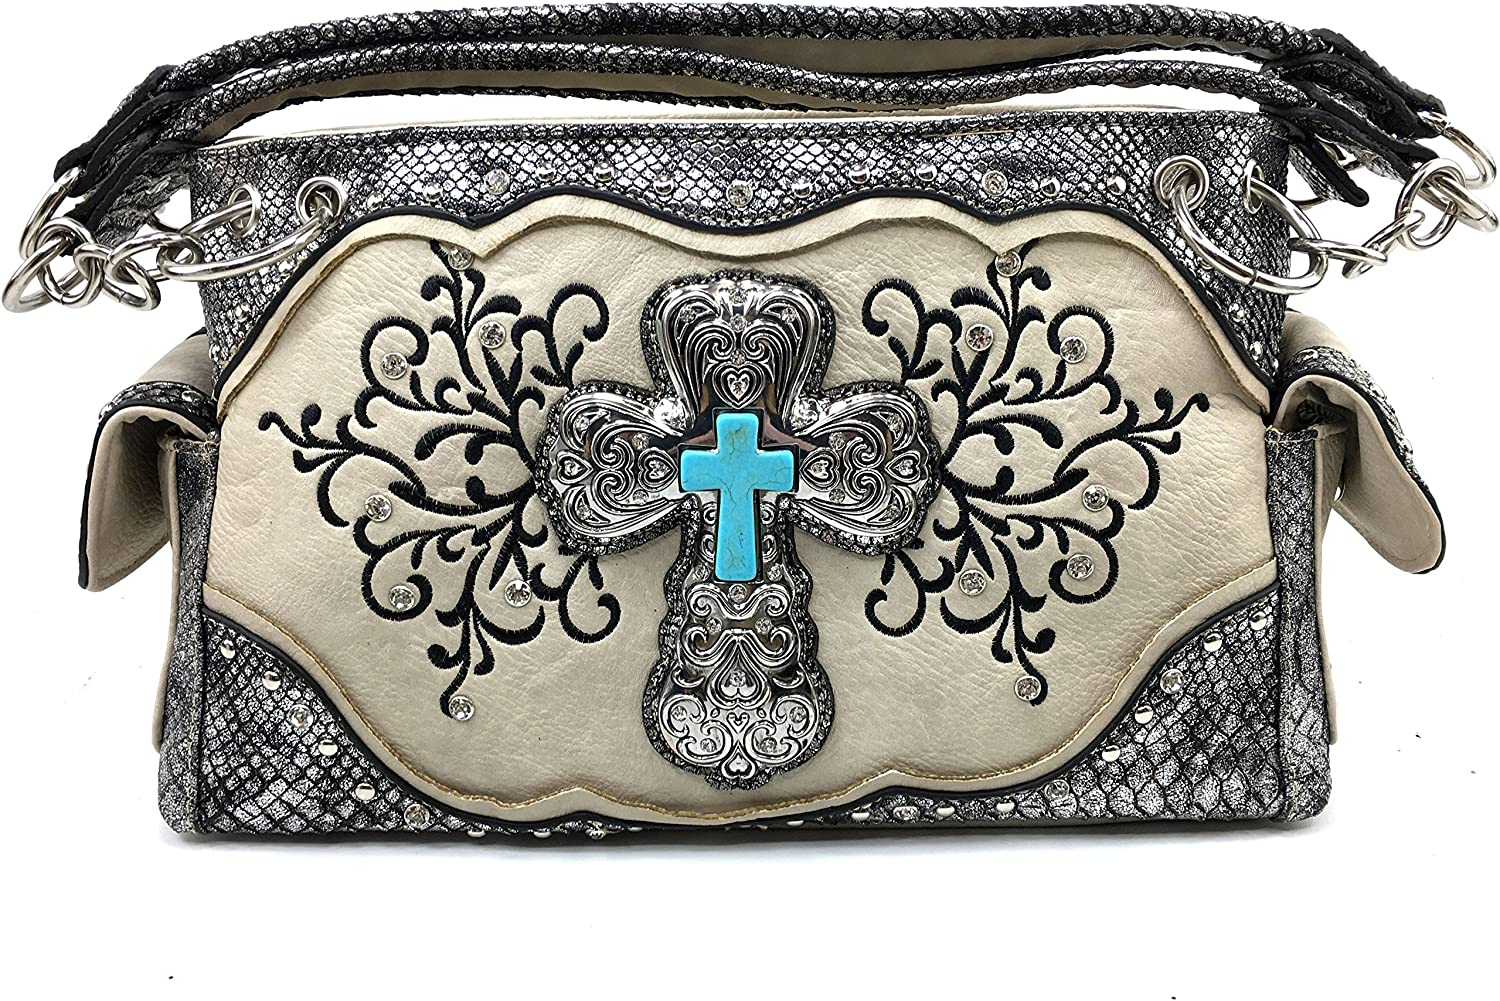 Justin West Floral Embroidery Rhinestone Turquoise Cross Concealed Handbag Purse